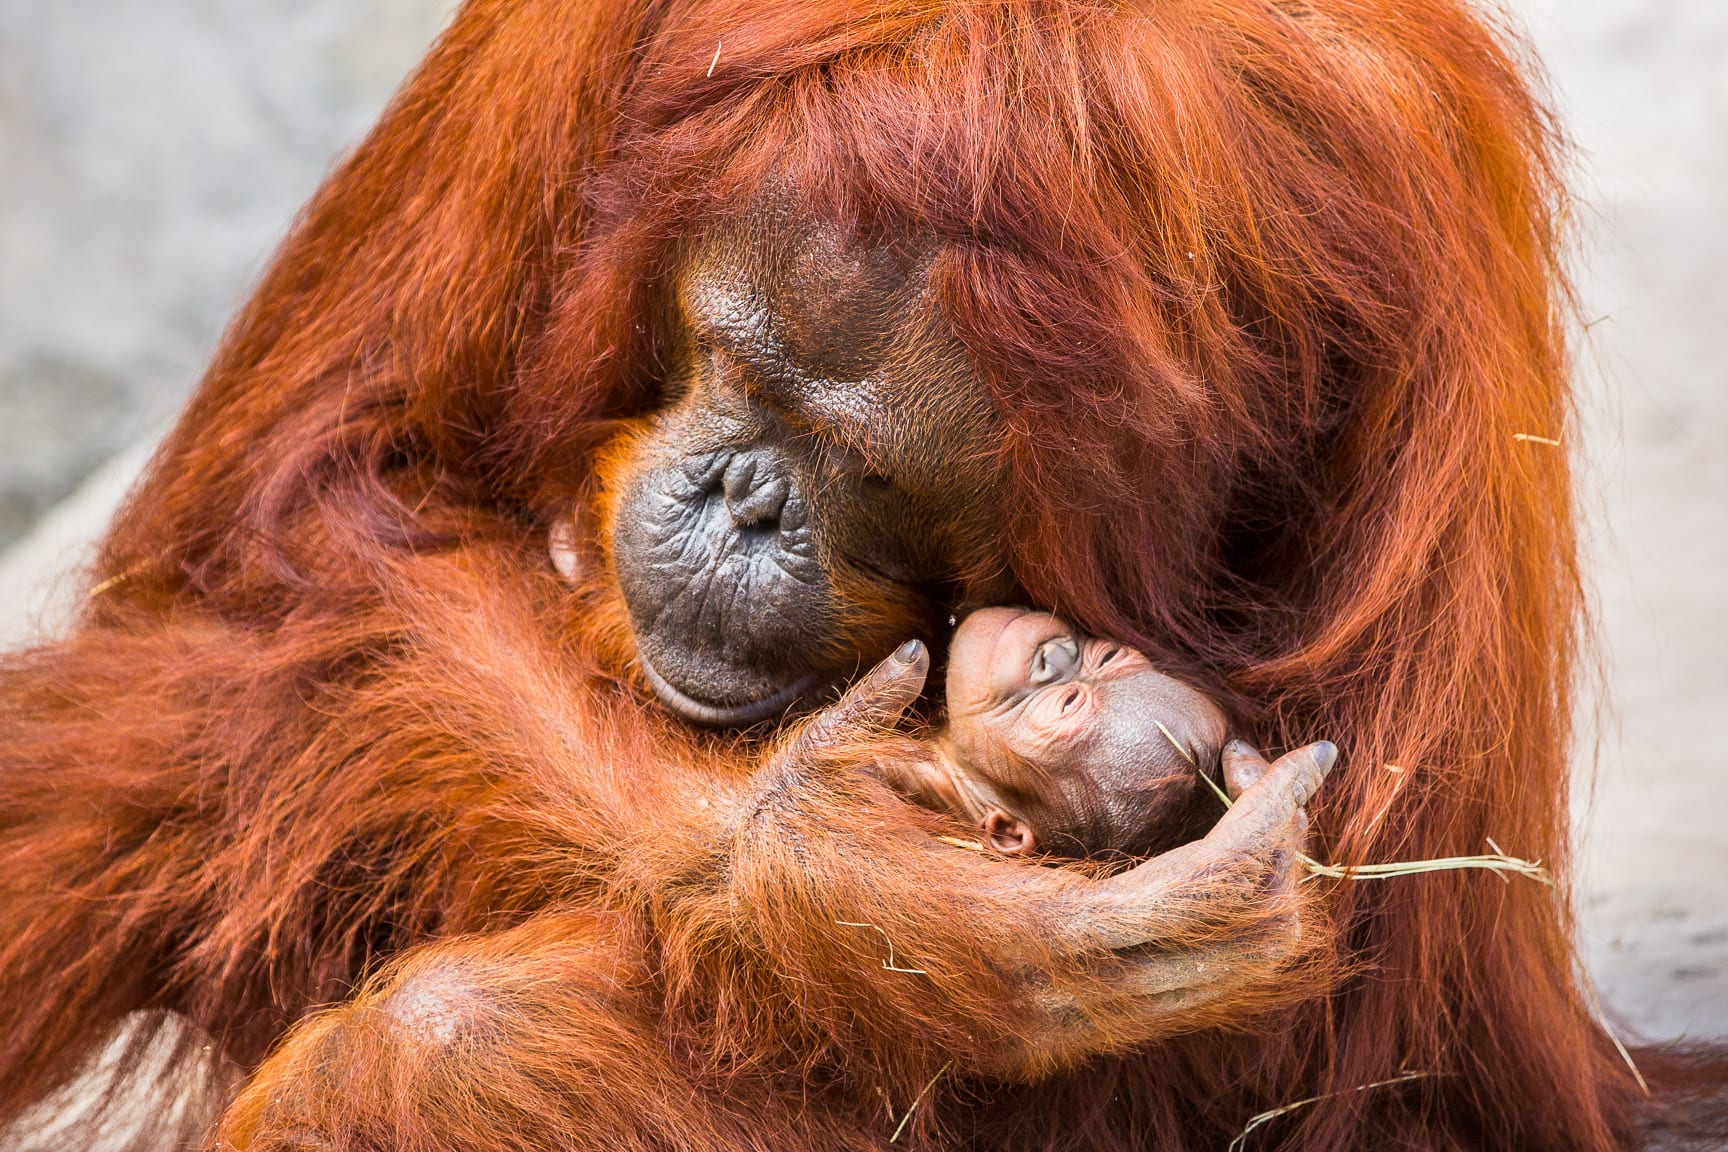 The Bond Of A Mother & Baby, A Message From Our VP Of Conservation